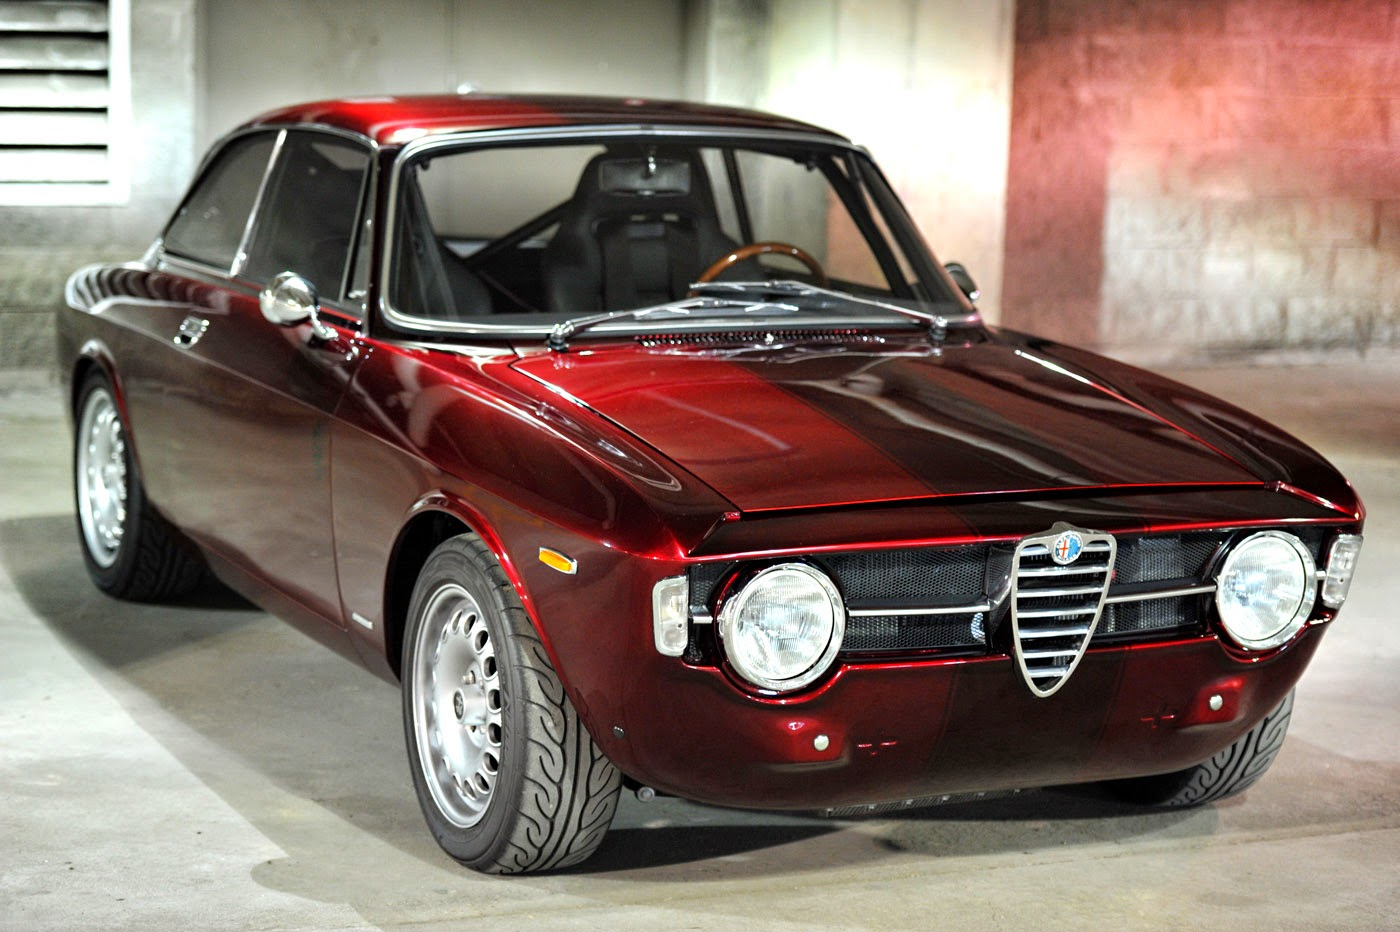 wiring diagram for garage html with 69 Alfa Romeo Gt 1300 Junior on Cottage Style Home Designs W further Craftsman Garage Door Sensor Wiring Diagram in addition Types Of Wiring Systems Electrical Wiring Methods additionally 69 Alfa Romeo Gt 1300 Junior likewise Basic Elevator  ponents Part One.